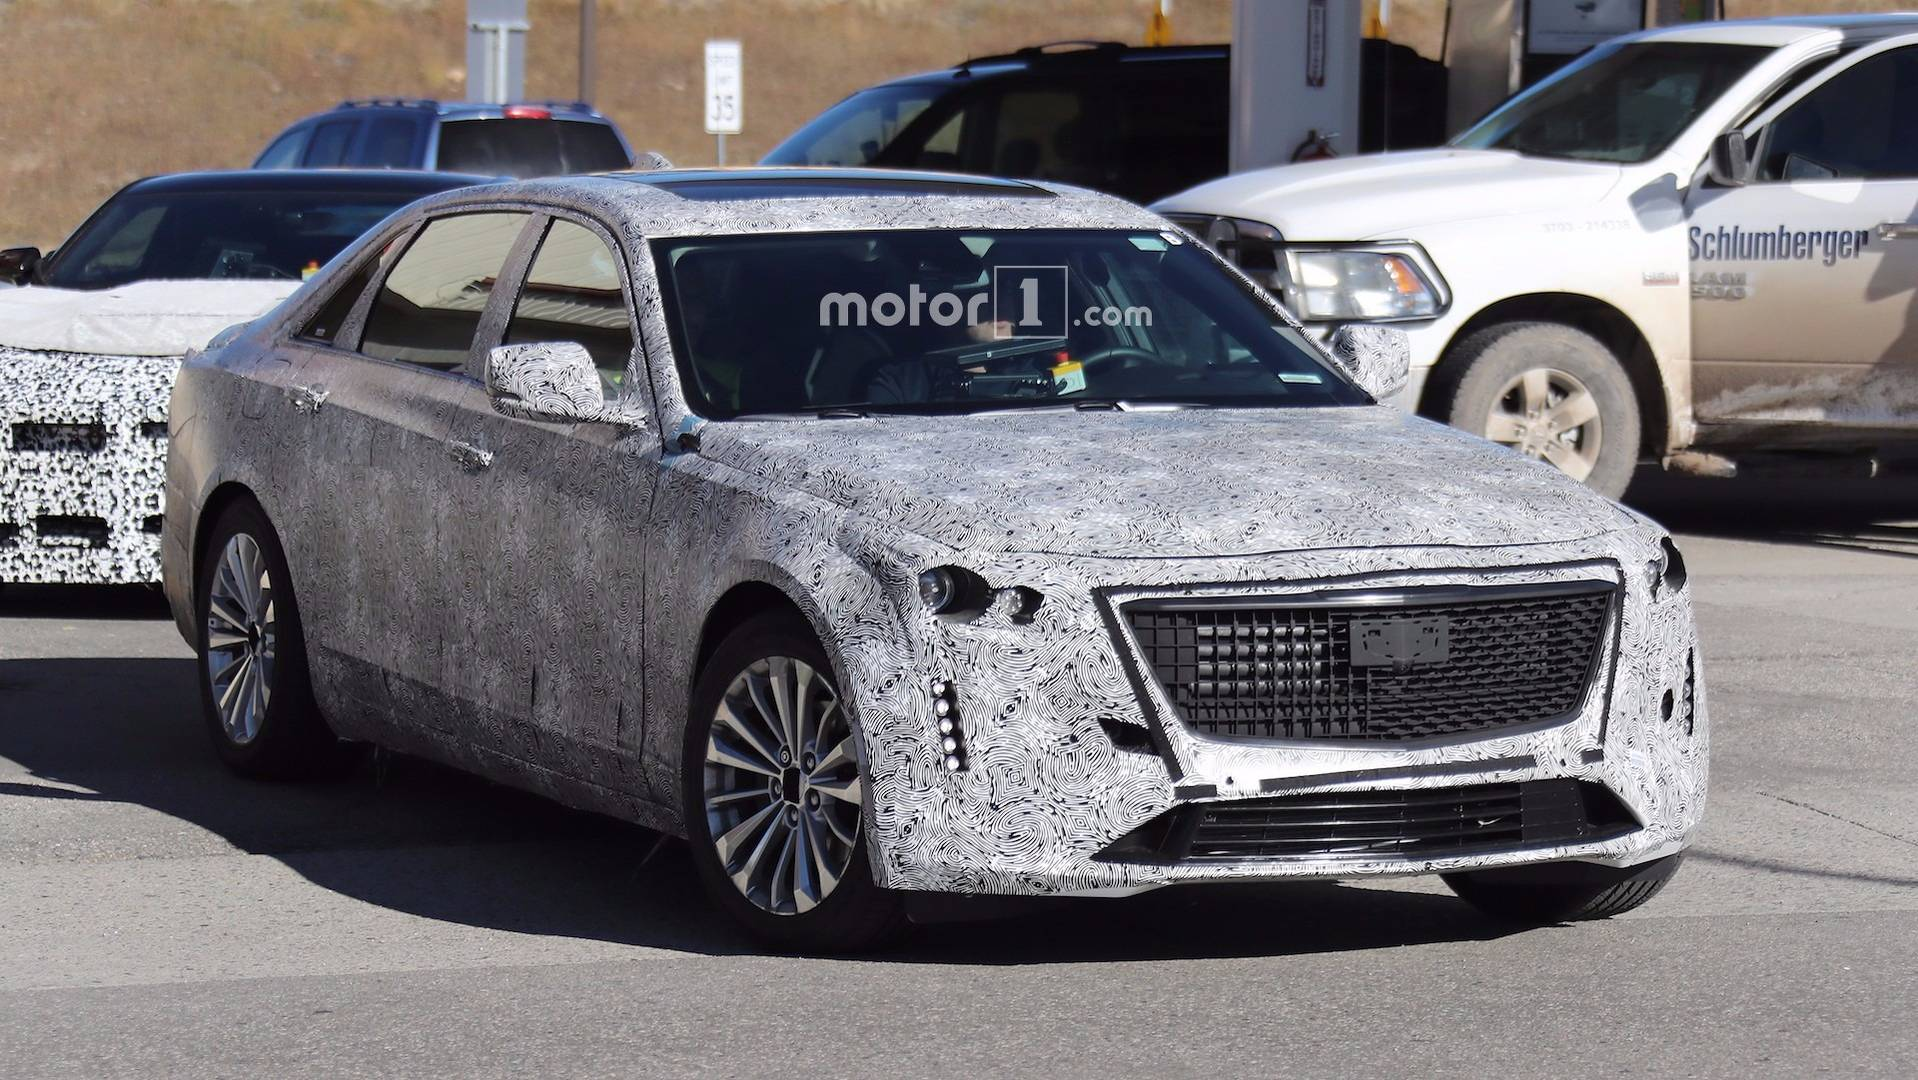 2019 Cadillac CT6 Prototype Motor1 OCT 06 2017 JEFF PEREZ